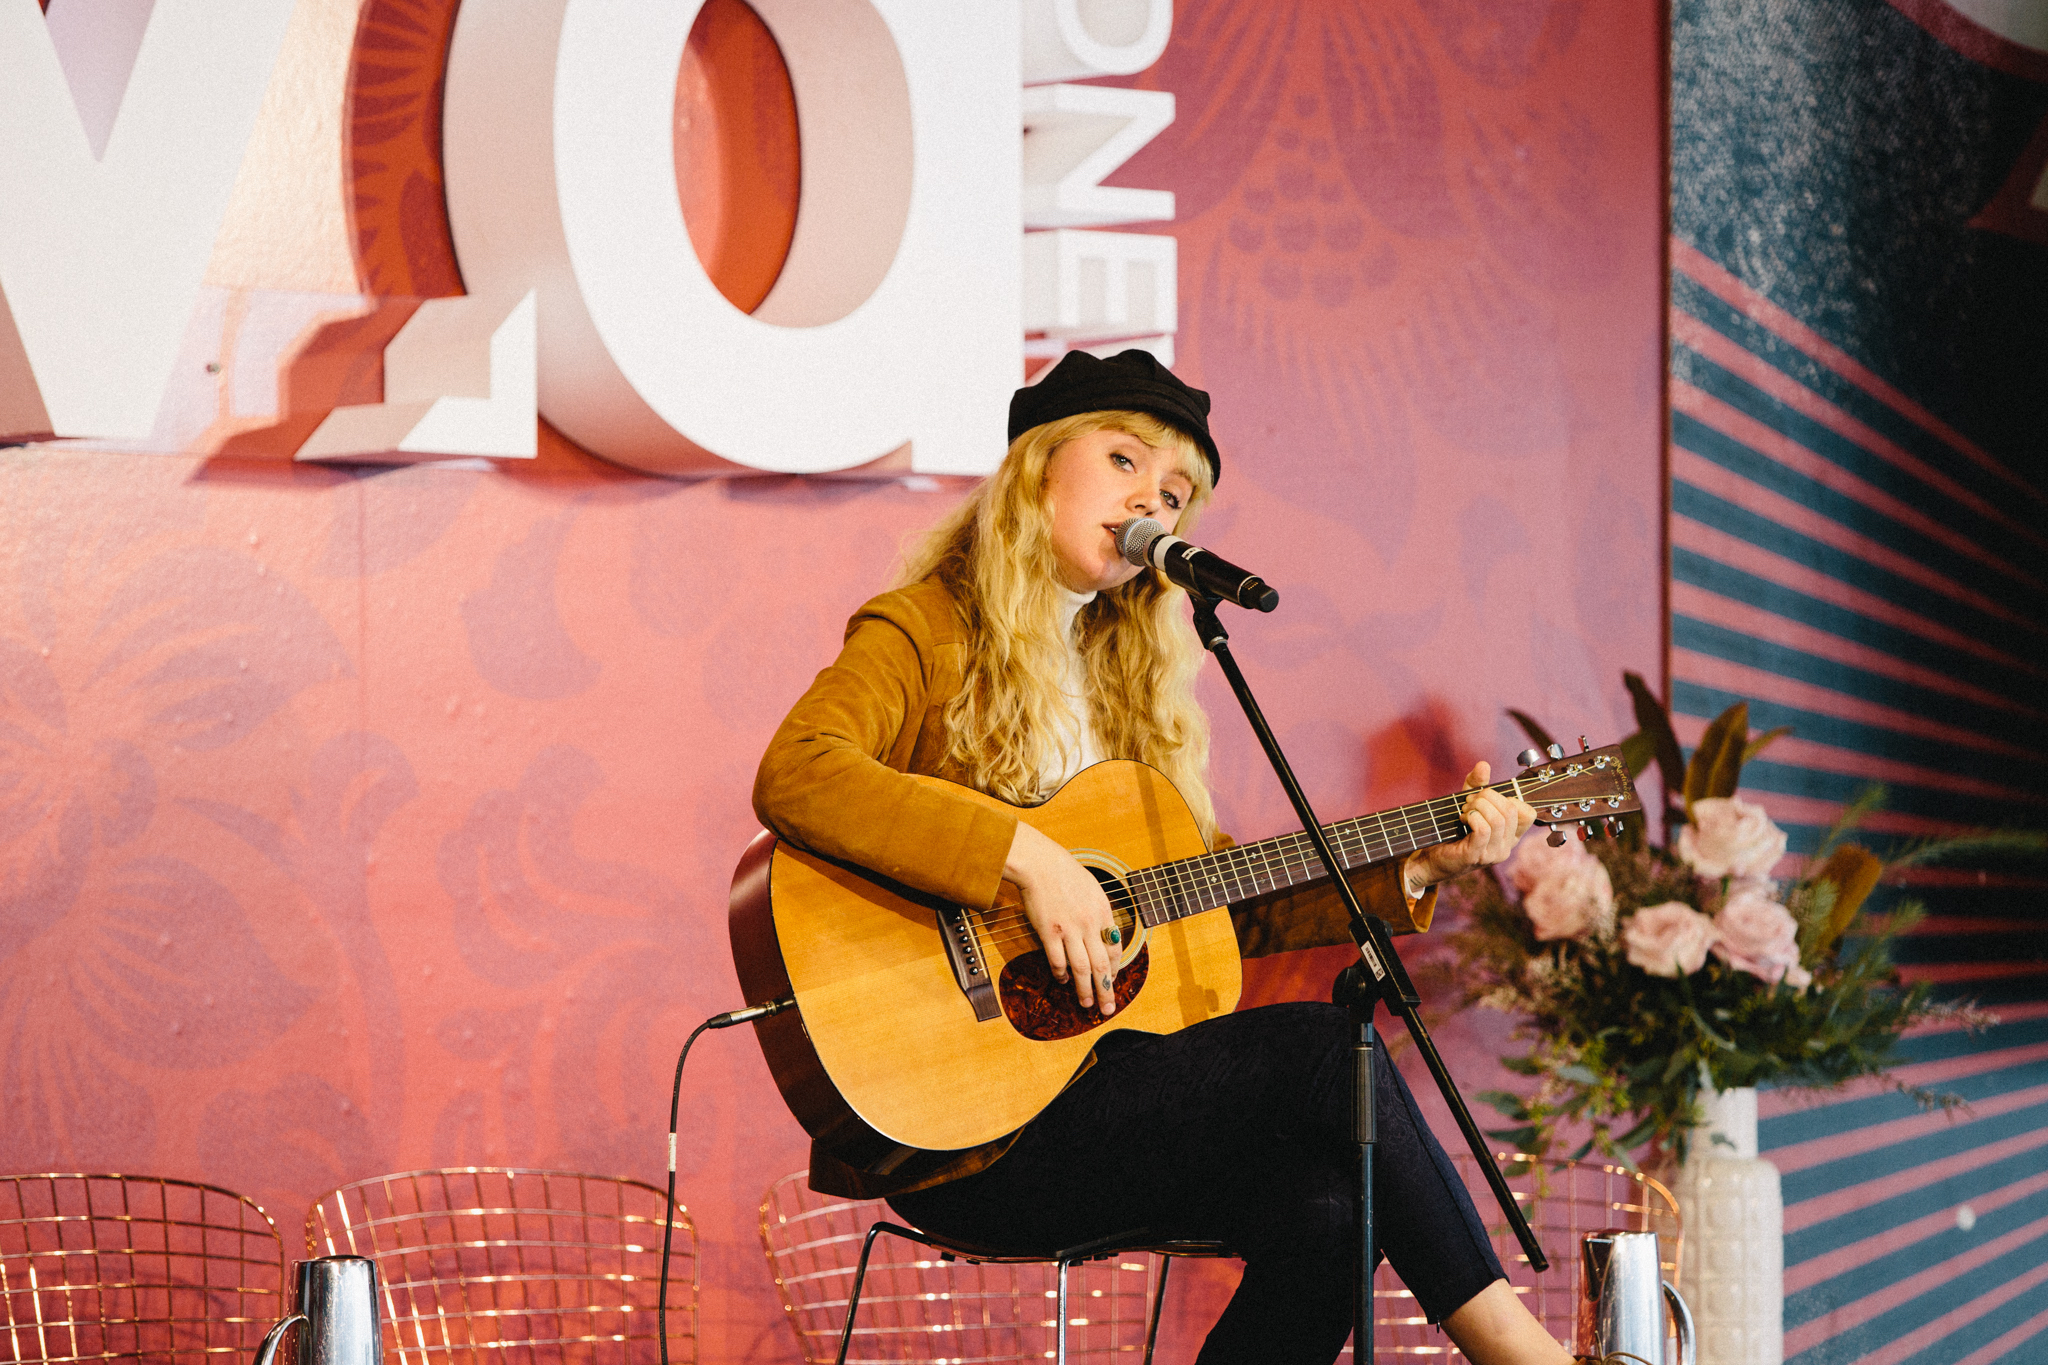 Iluka sings at Pathway to Platform after performing into the wee hours for Killing Heidi the night before. Image Mikki Gomez for Music Love Australia